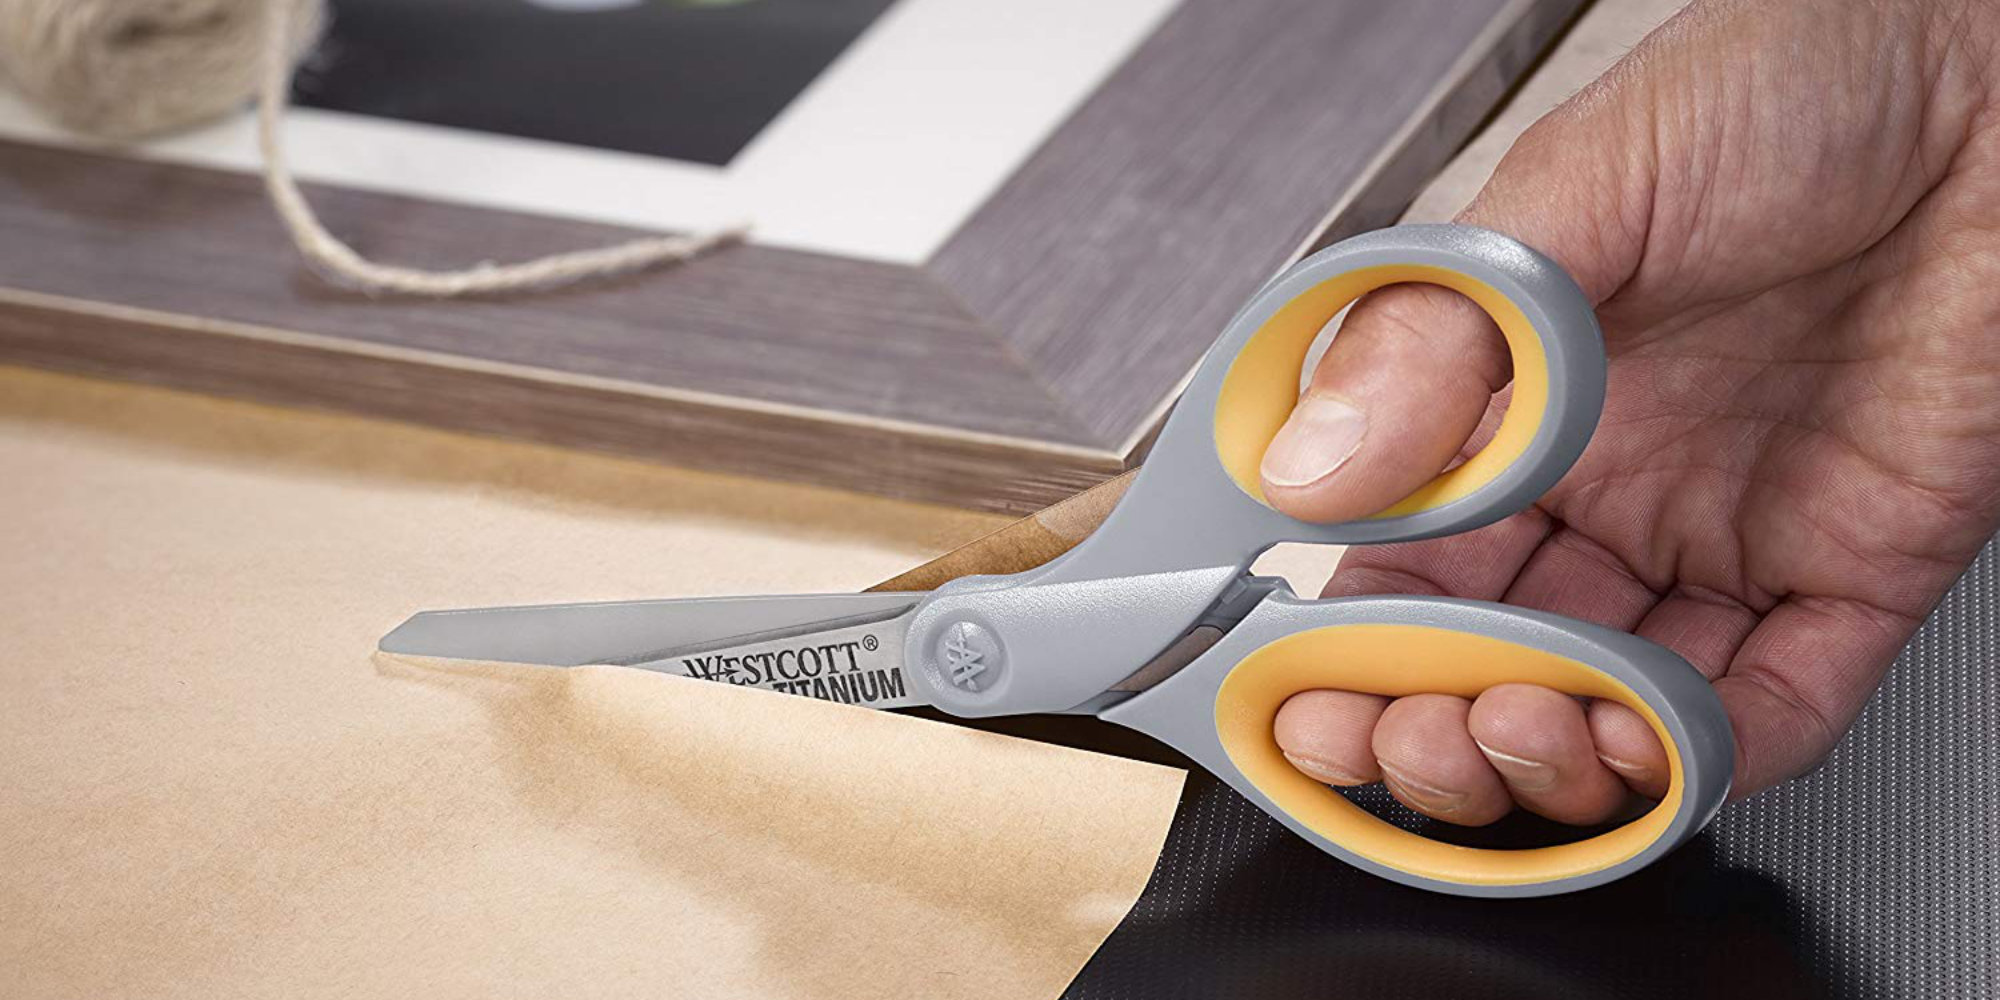 Less than $5 nabs a 2-pack of Westcott 8-inch Titanium Bonded Scissors (Save 45%)